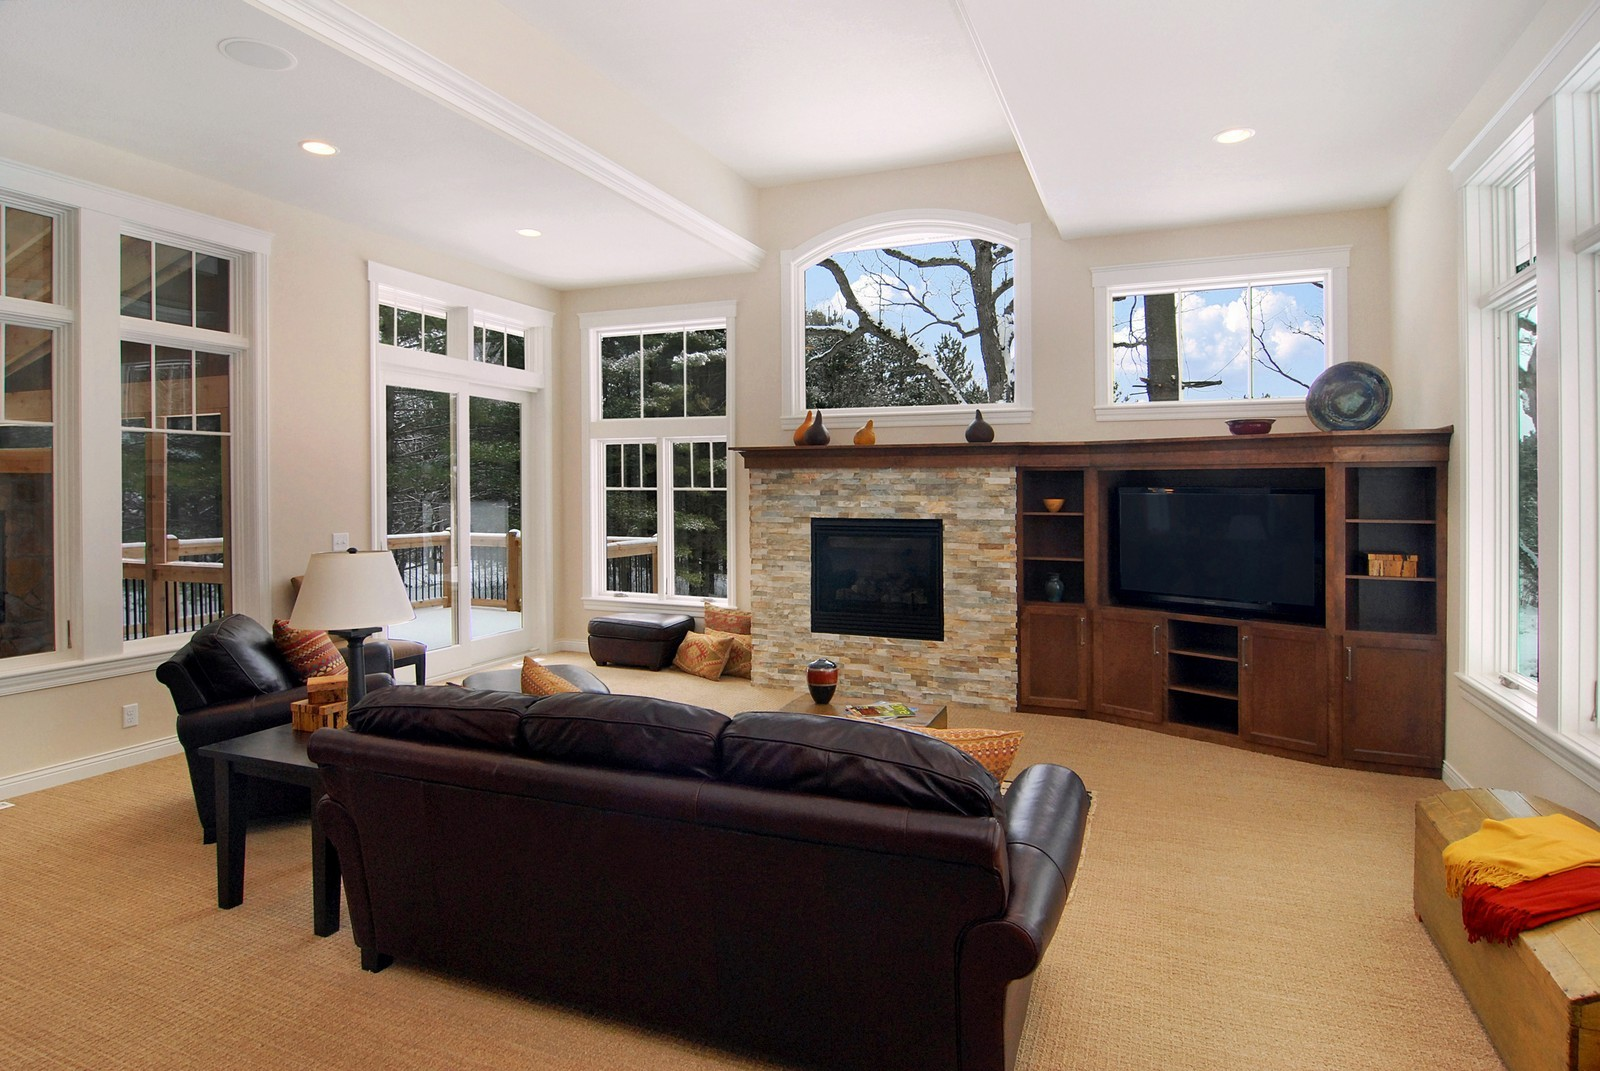 Real Estate Photography - 13220 24th Street North, West Lakeland, MN, 55082 - Living Room